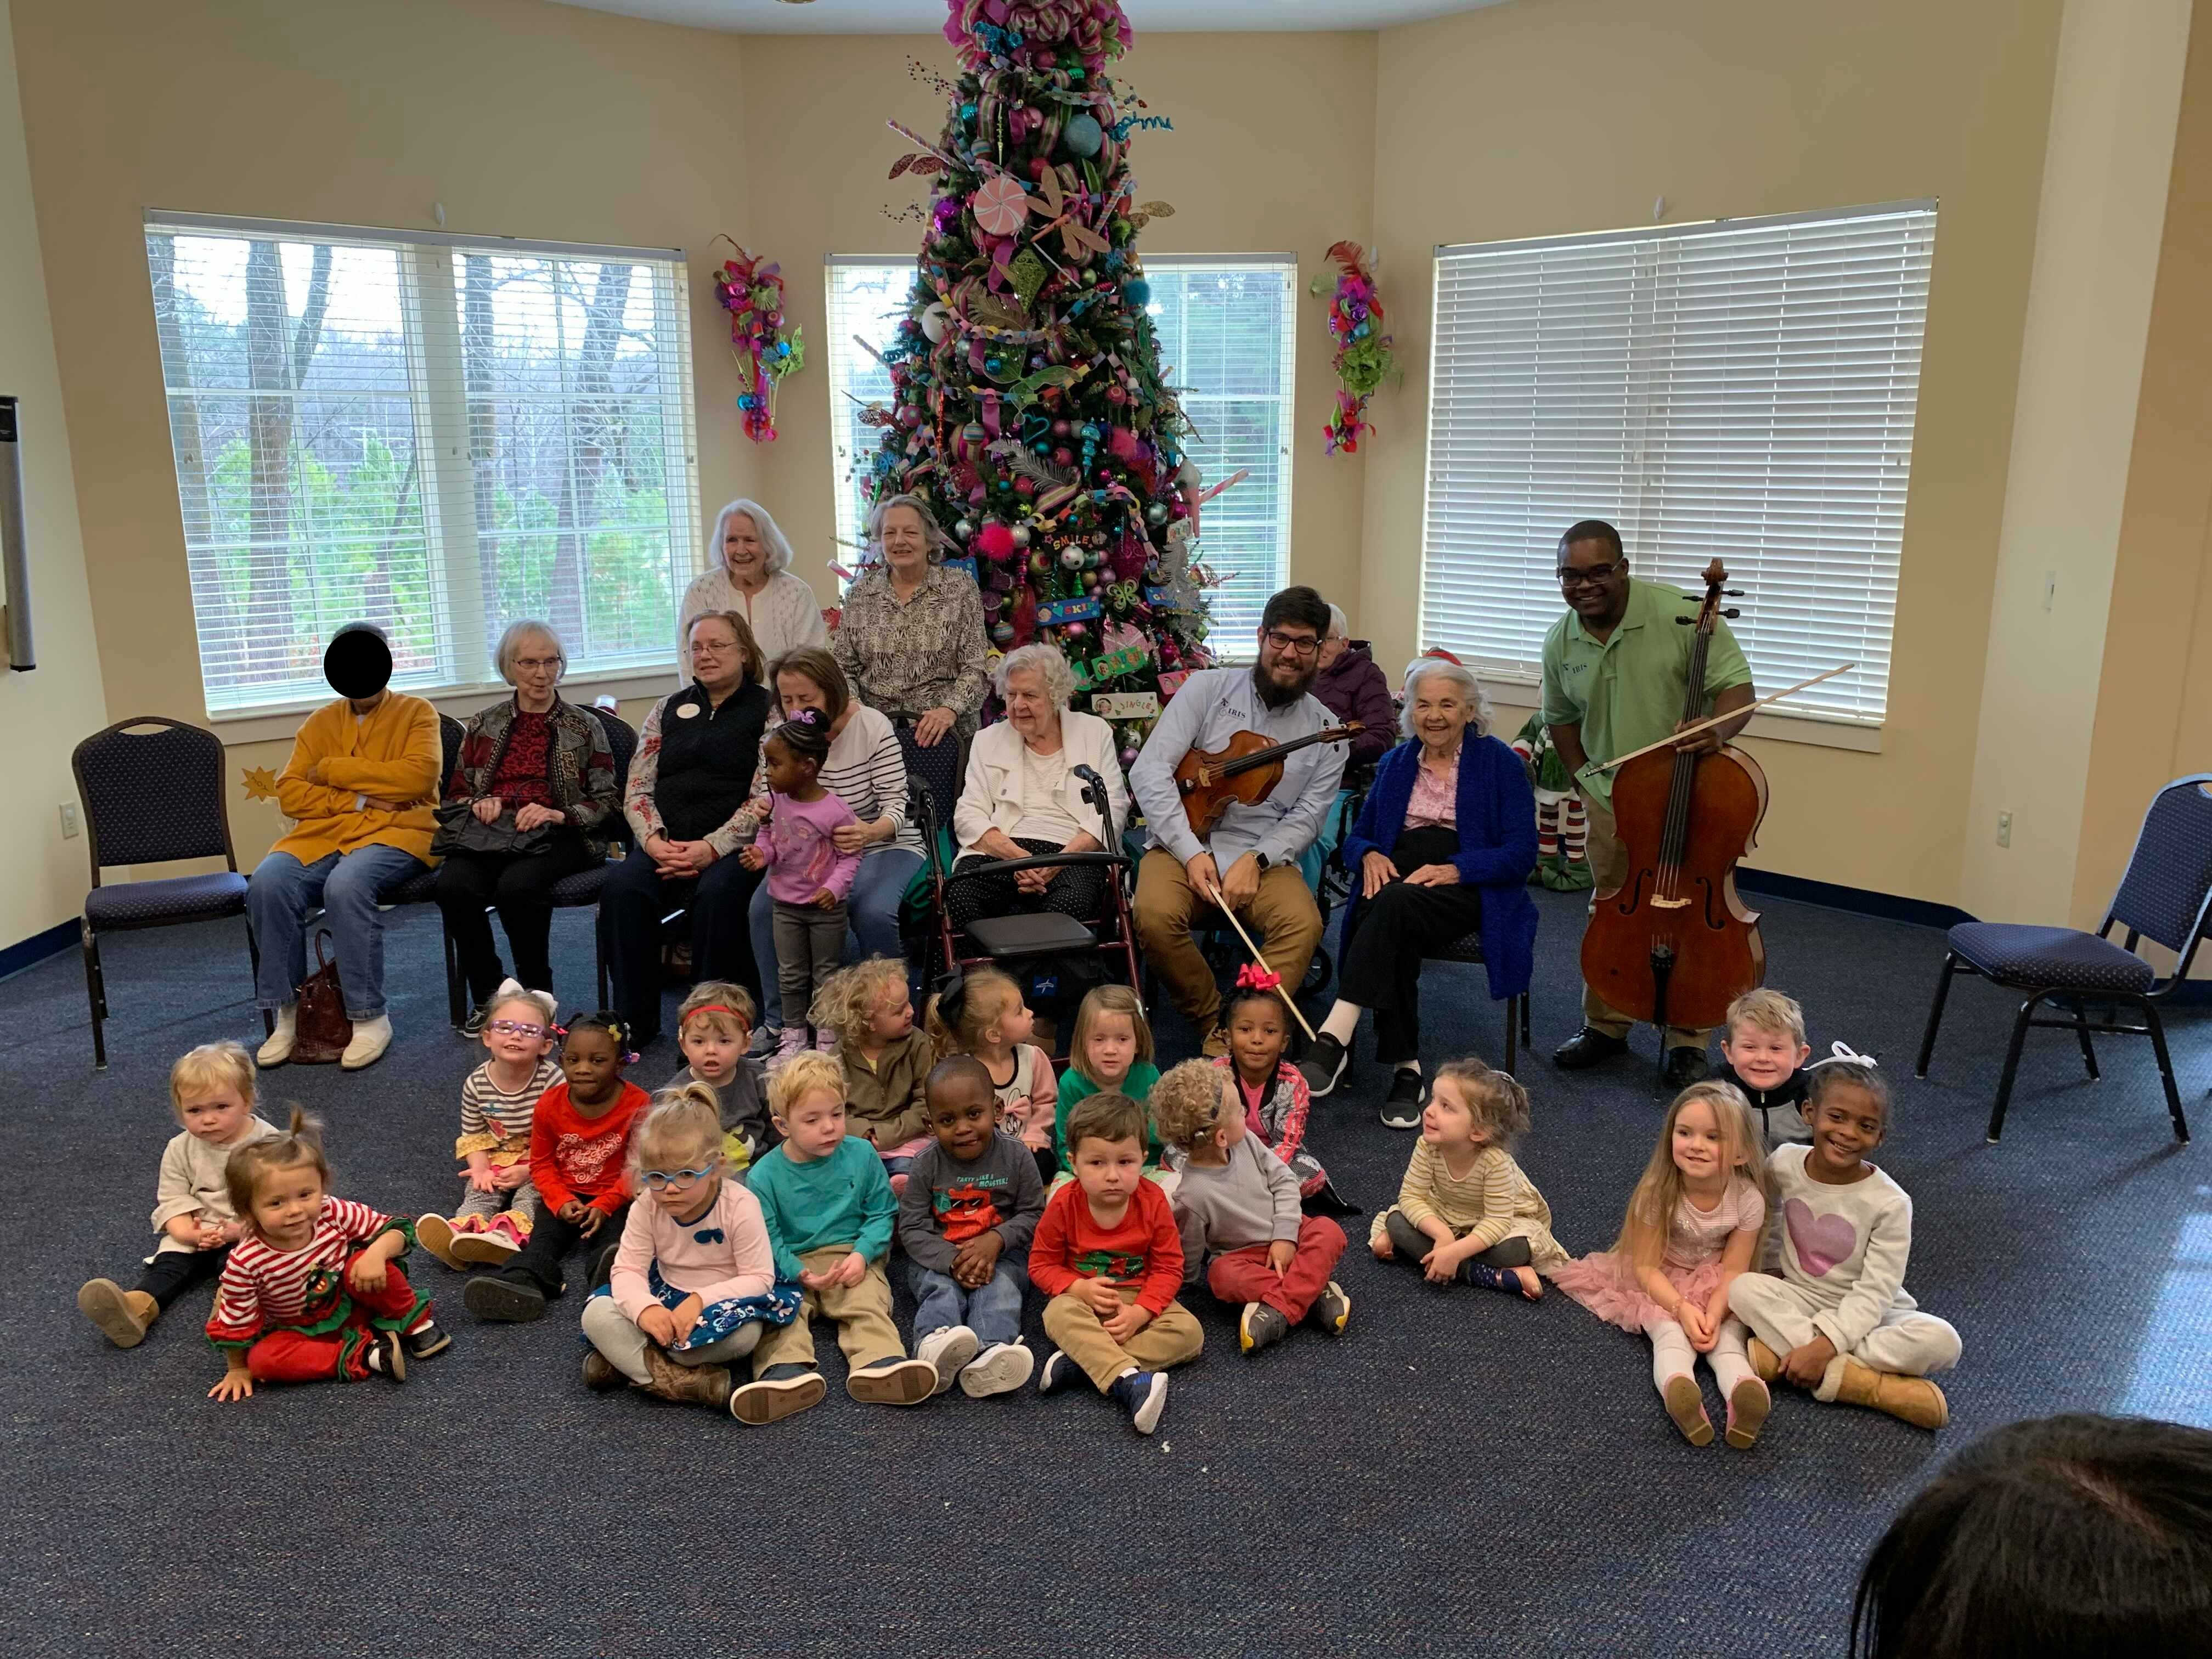 IRIS Orchestra Spreads Holiday Cheer